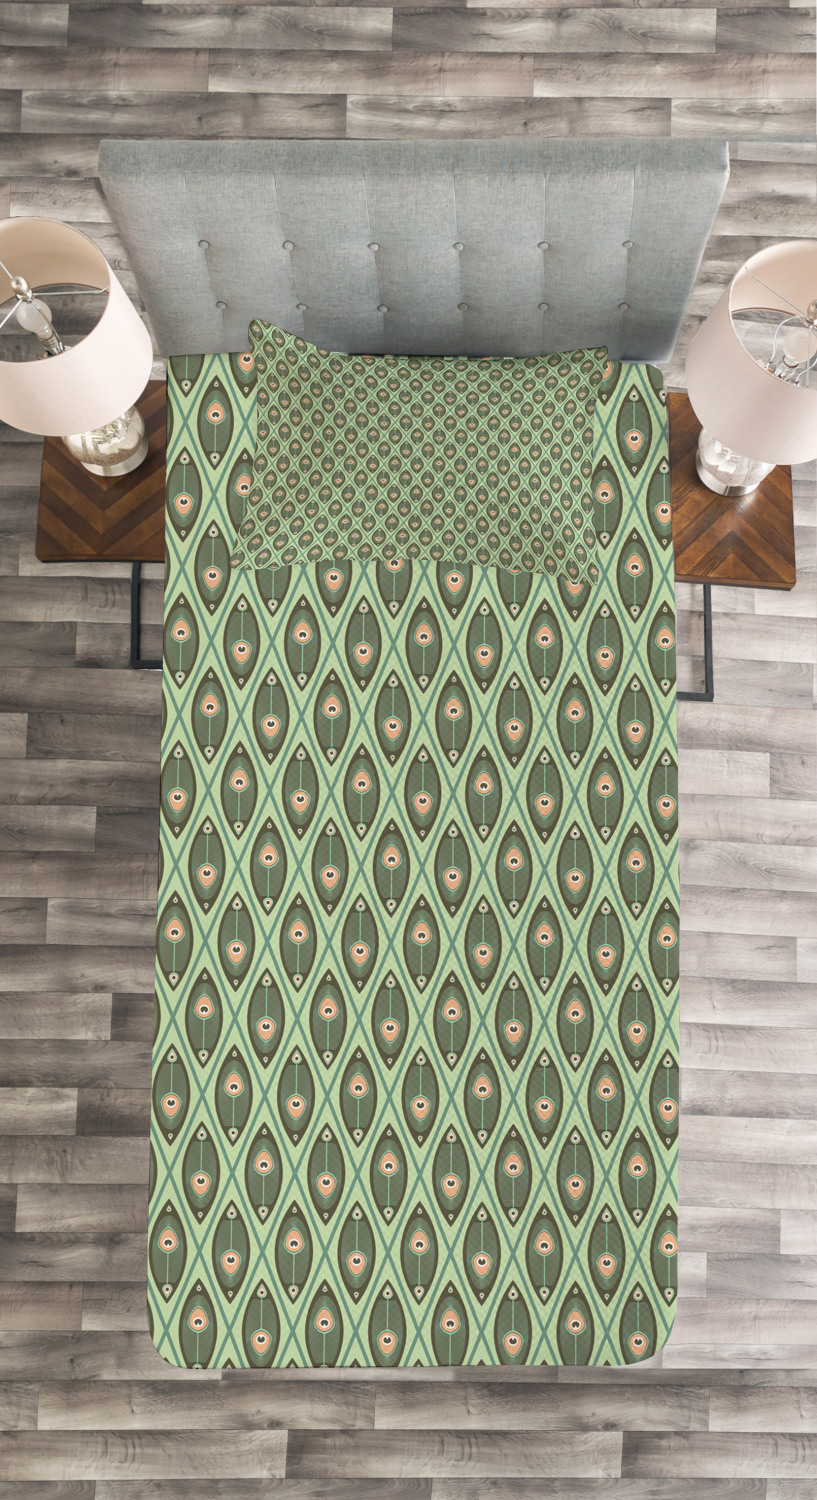 Peacock Feathers Print Geometric Quilted Bedspread /& Pillow Shams Set